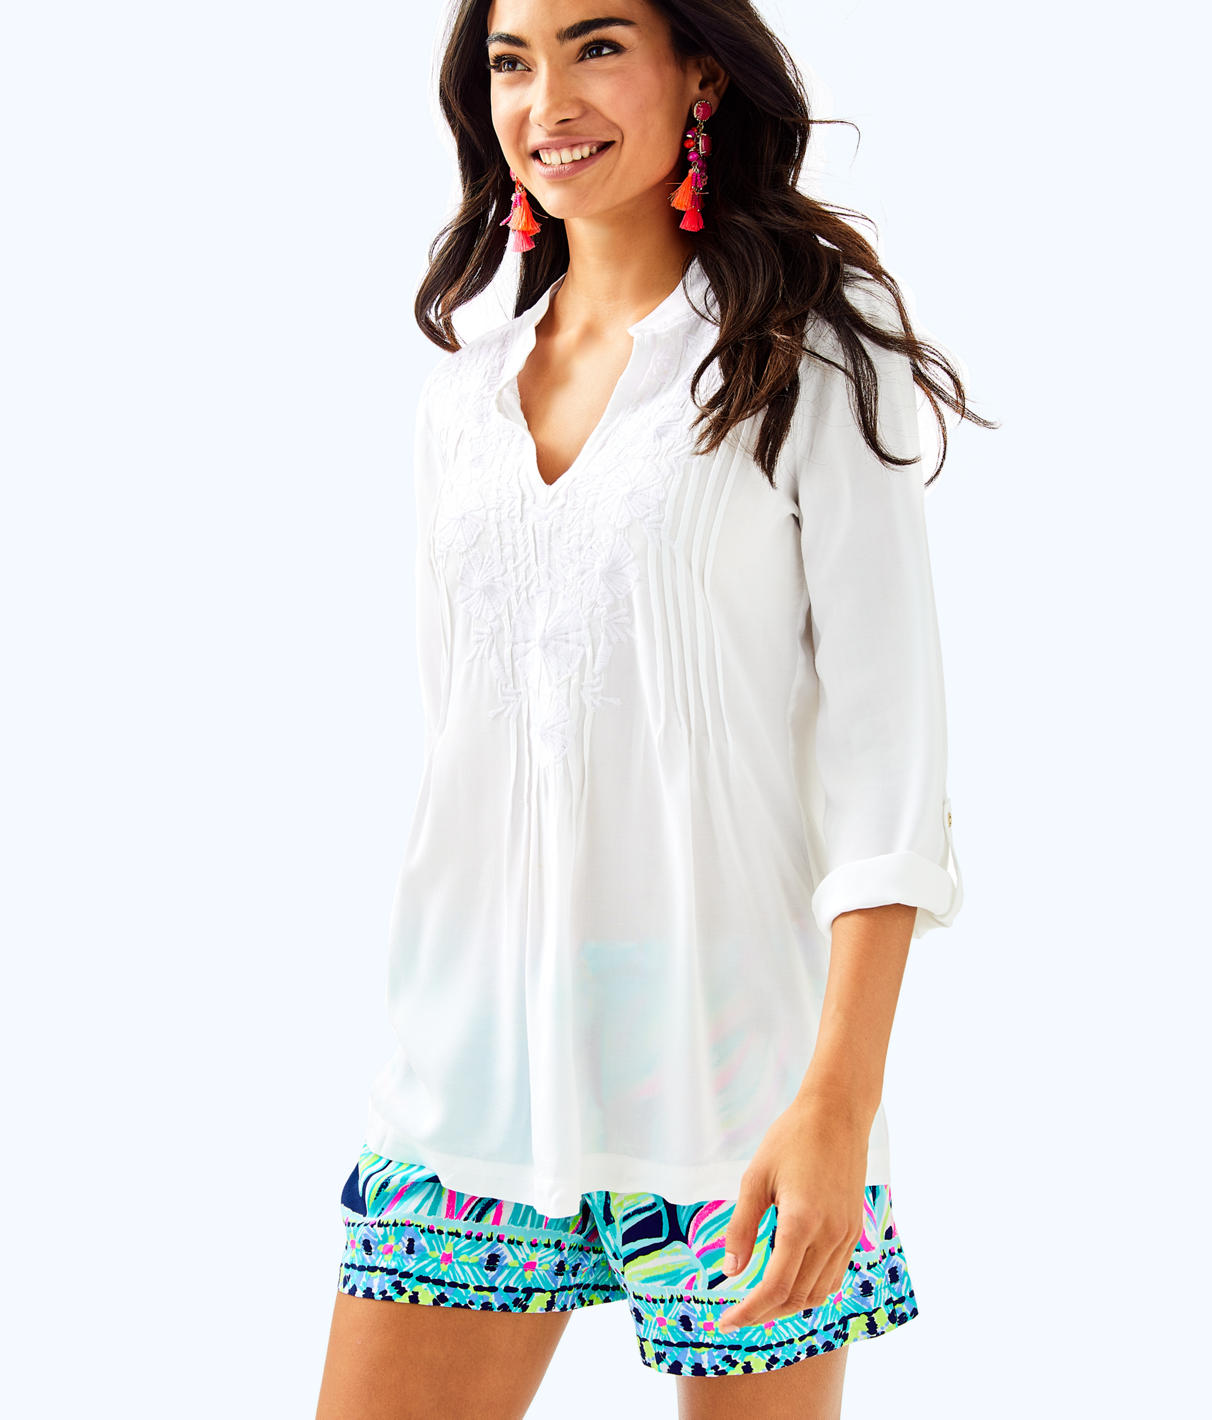 Lilly Pulitzer Lilly Pulitzer Womens Sarasota Tunic